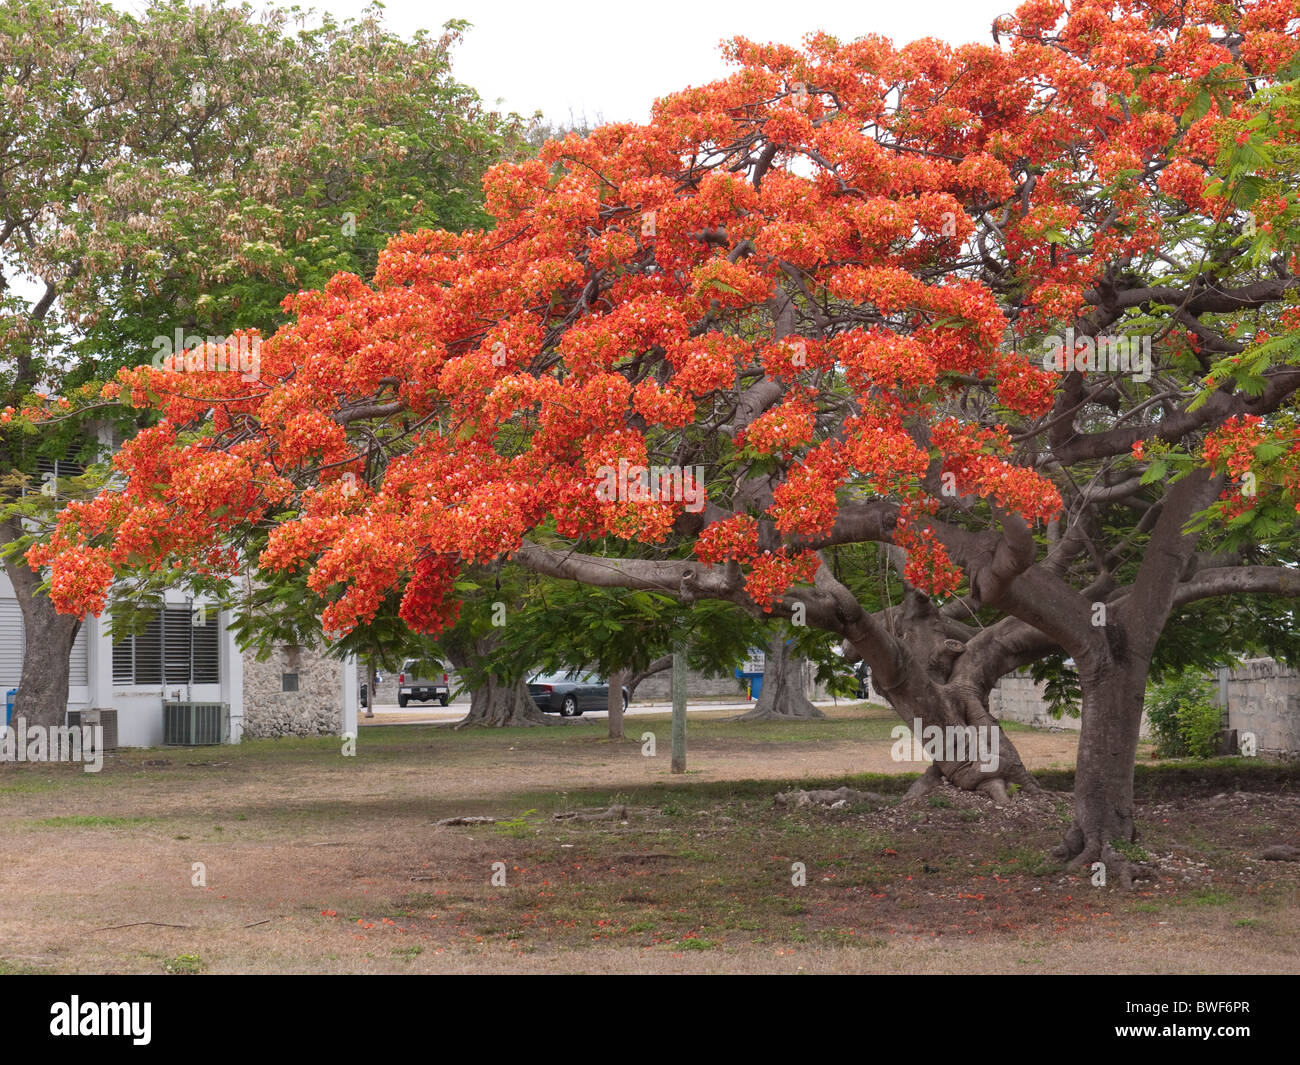 Fantastic blossom on the Royal Poinciana Tree in Key West in the Florida Keys in the State of Florida USA - Stock Image